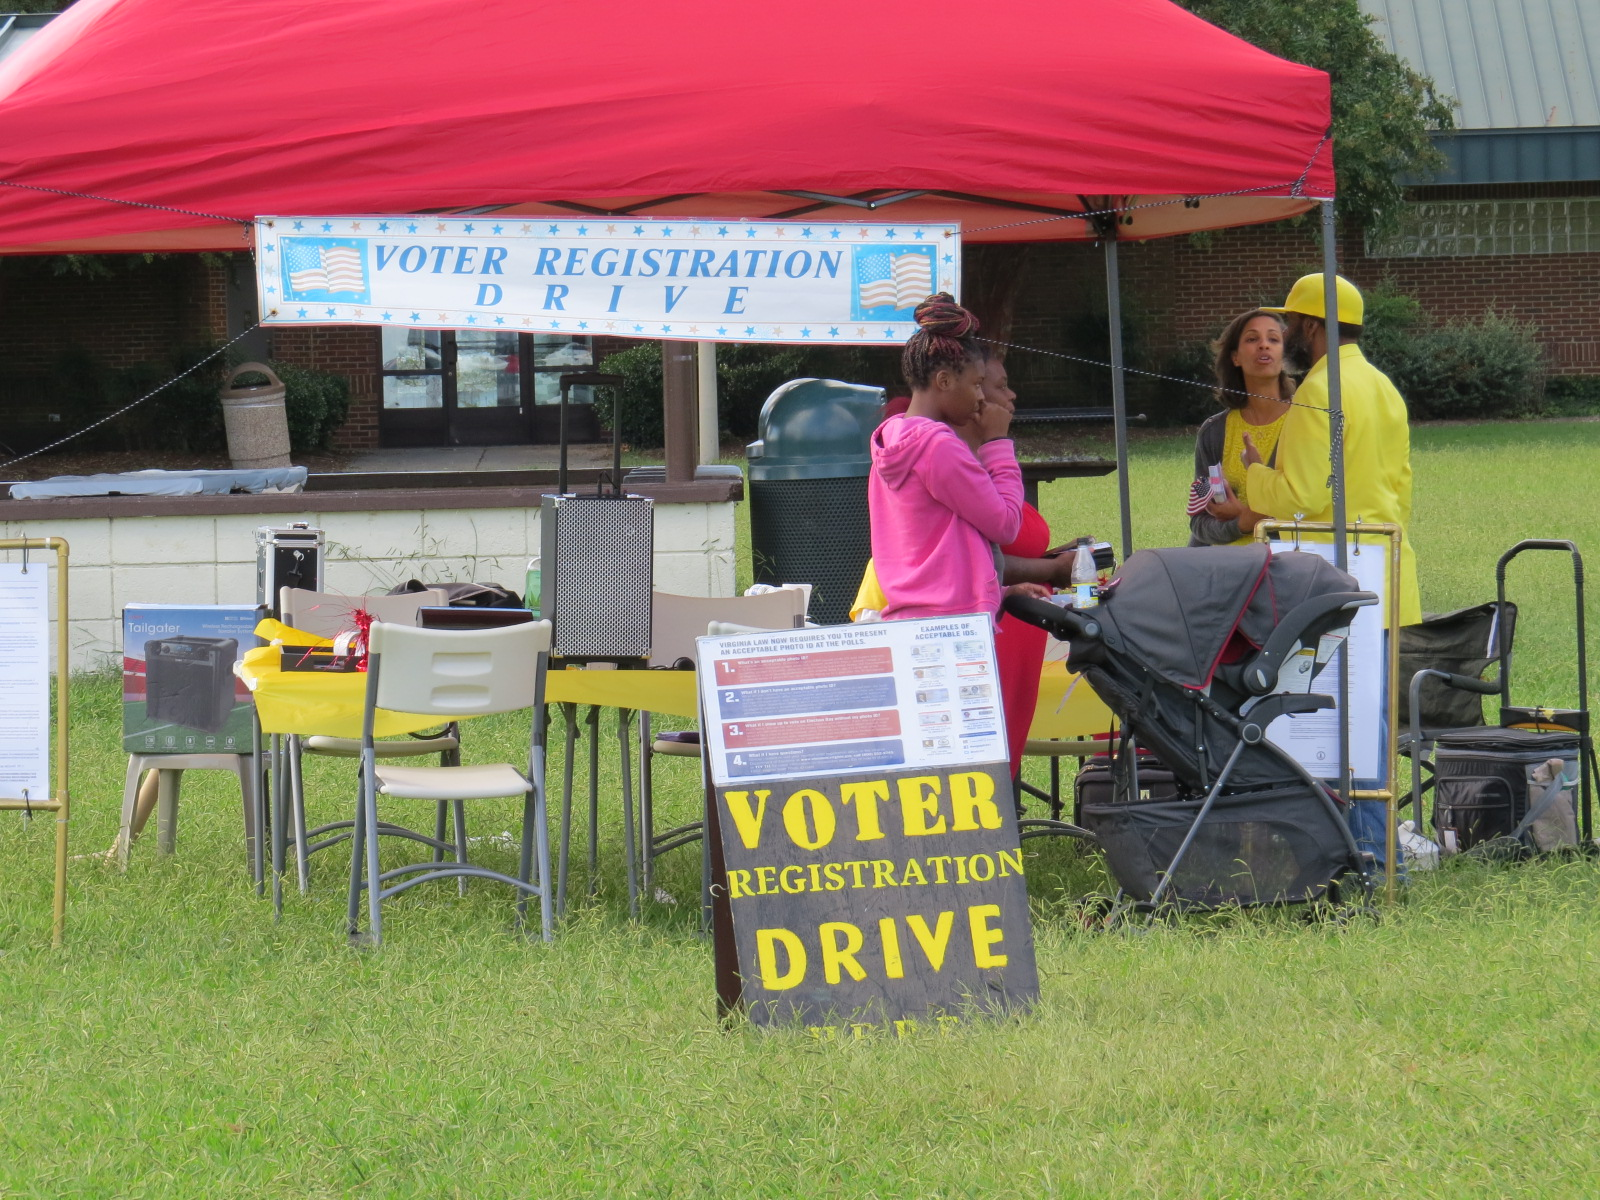 Voter Registration at the 2017 Family Day